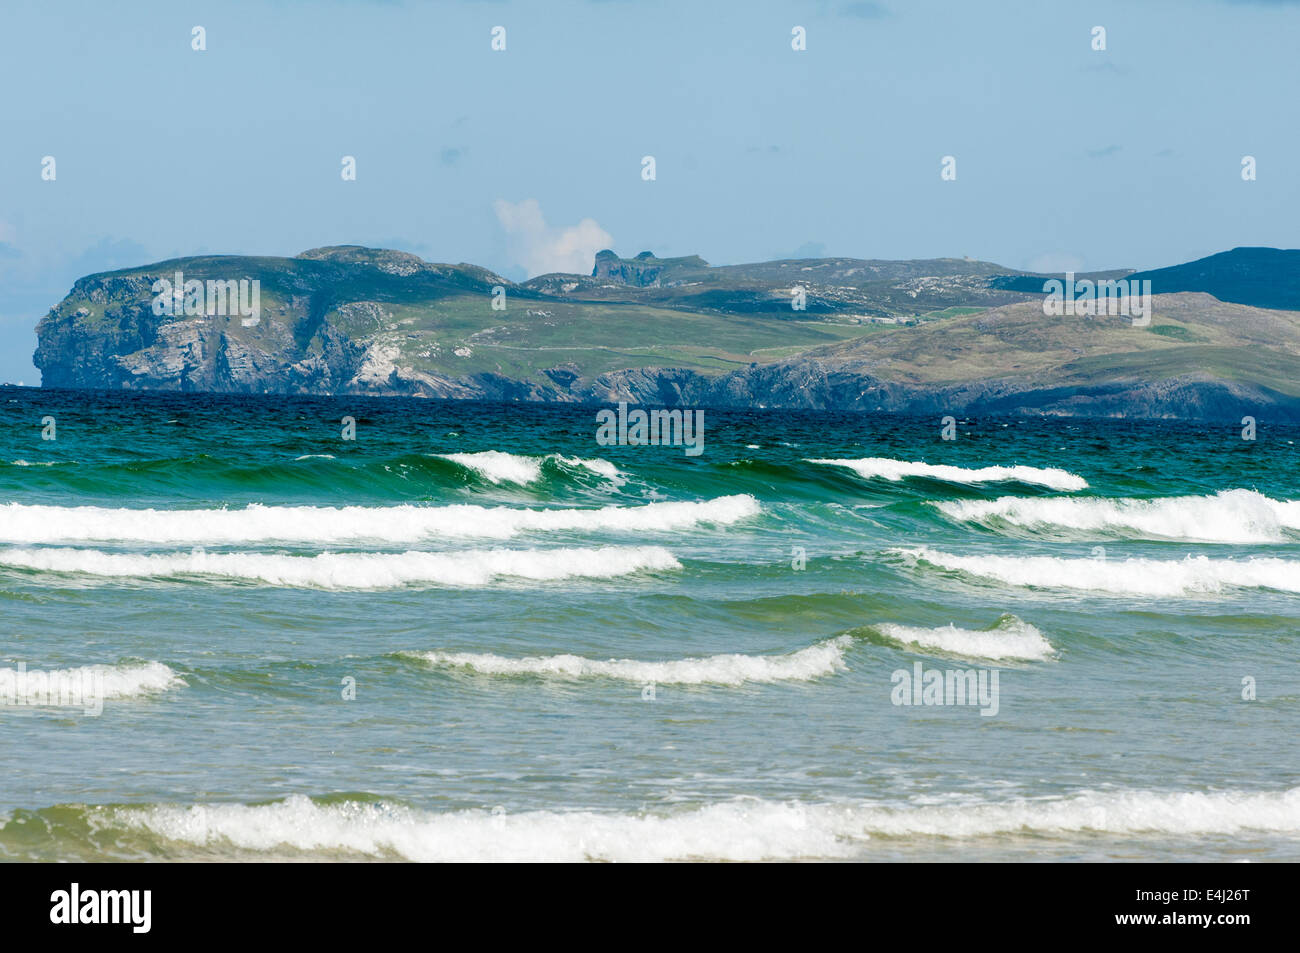 Looking over the sea towards Horn Head, Donegal, Ireland. - Stock Image